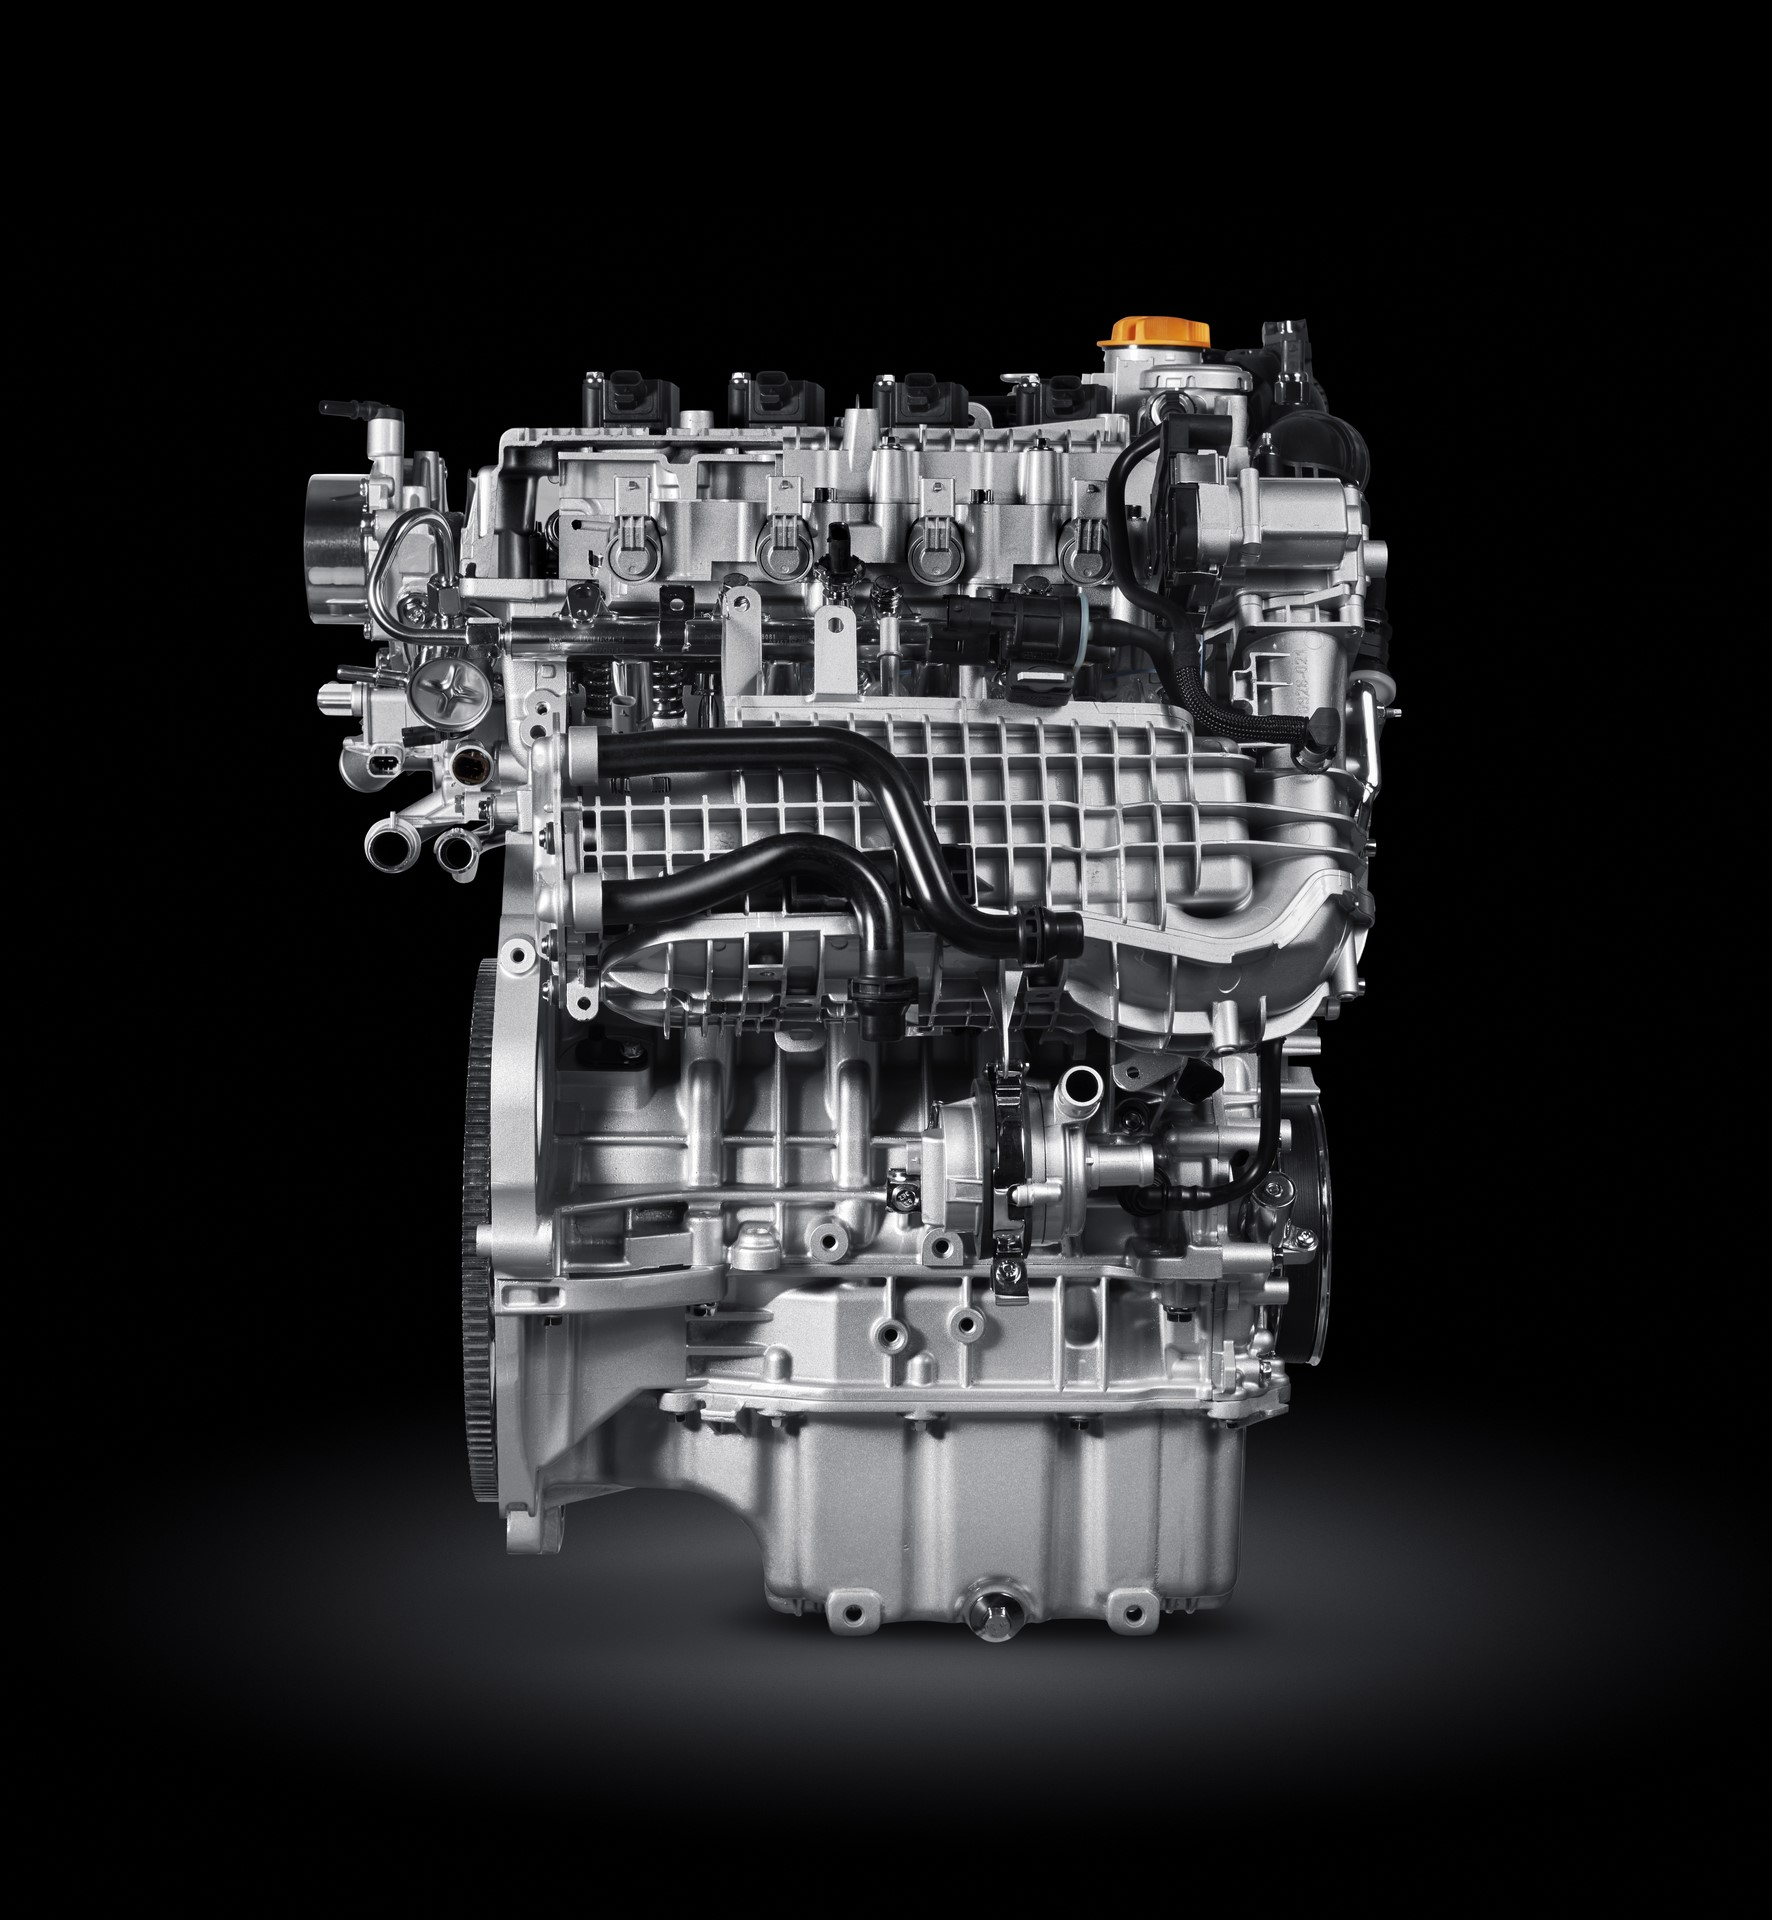 New-13L-Turbo-4-cylinder-150HP_08